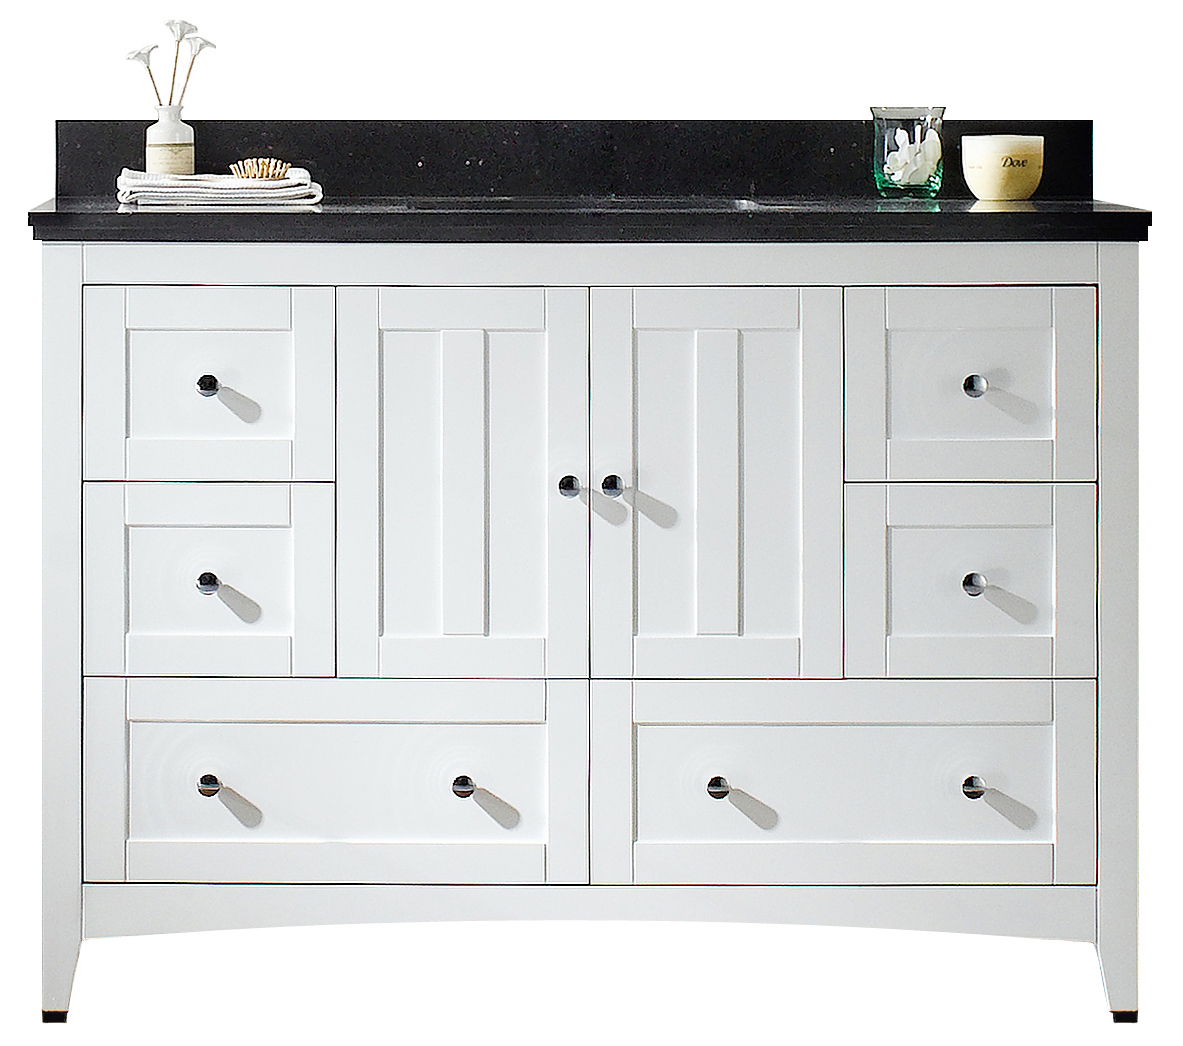 47.6-in. W Floor Mount White Vanity Set For 1 Hole Drilling Black Galaxy  Top White UM Sink #IMG-17663